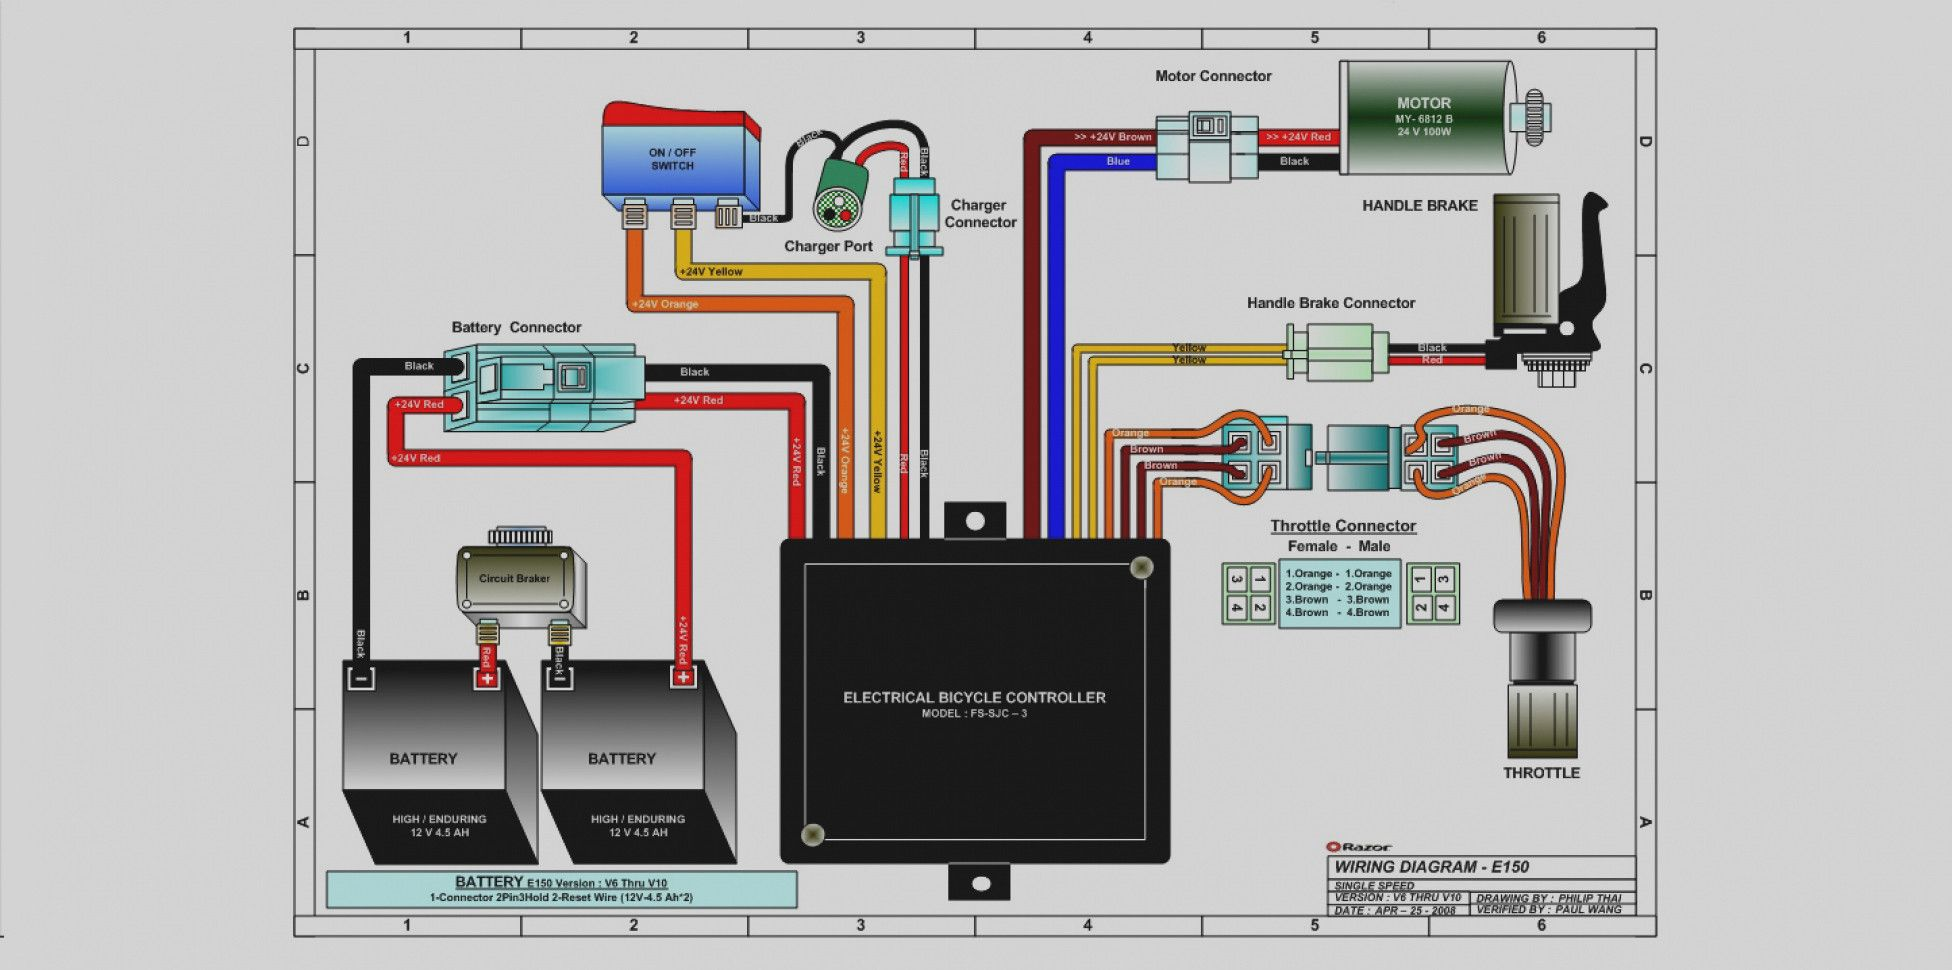 Common Scooter Wiring Diagram - e300 wiring diagram wiring ... on